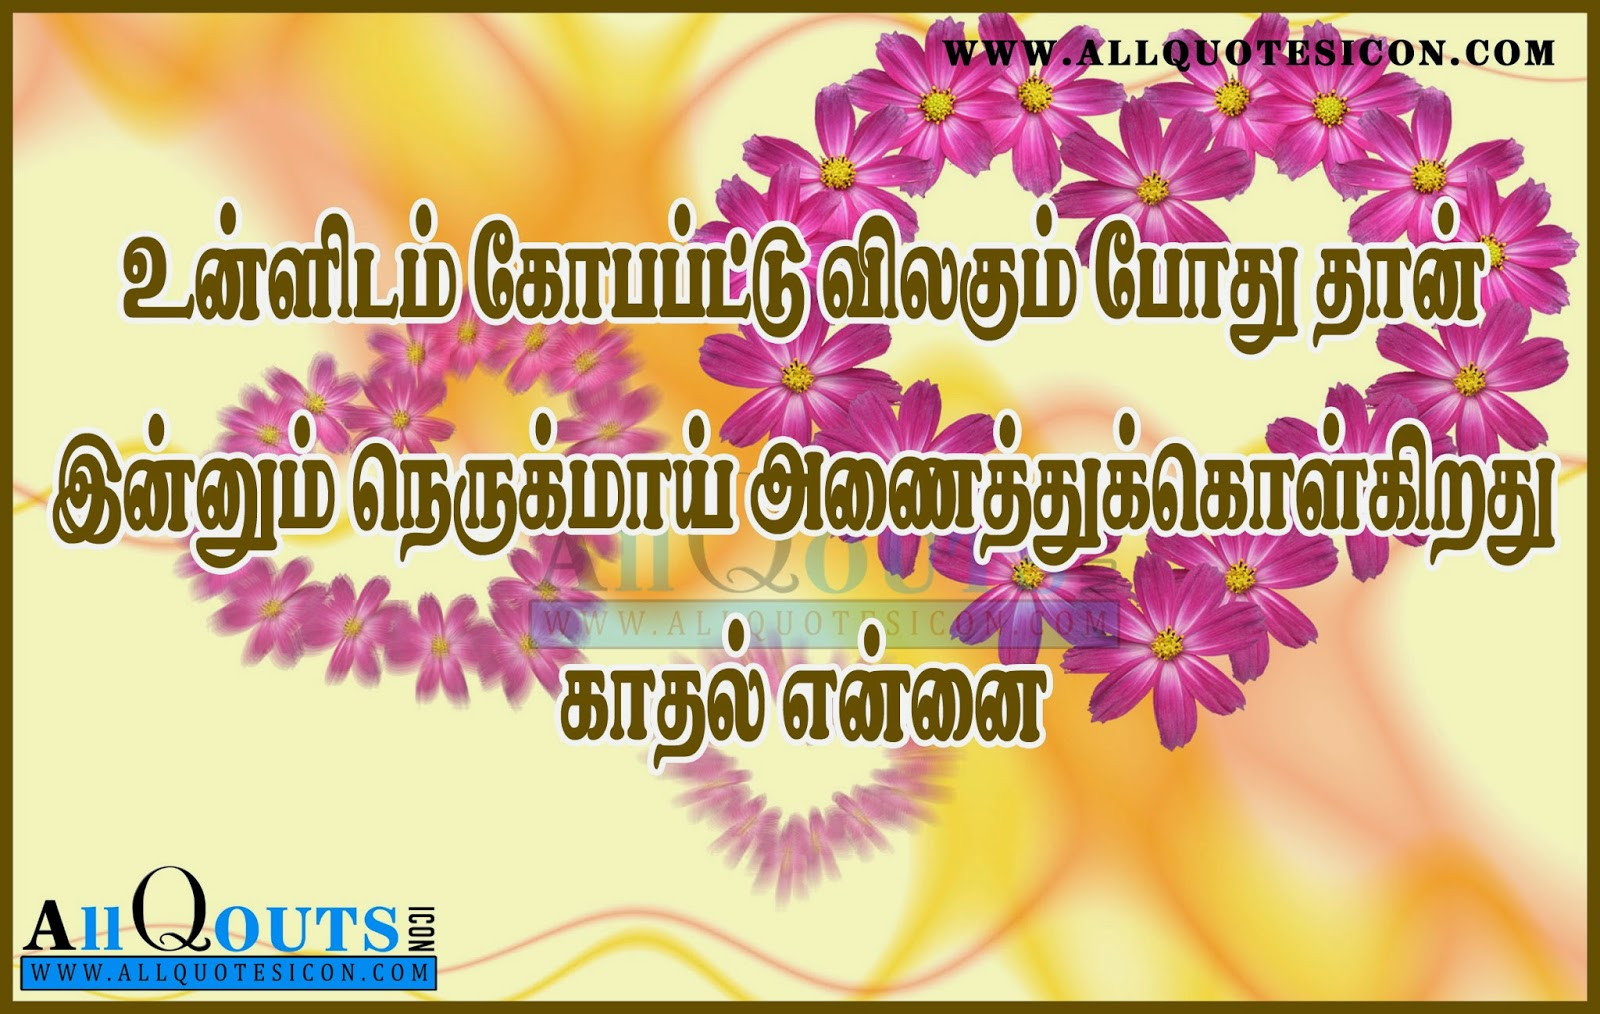 Images Of Love And Friendship Quotes In Tamil The Audi Car